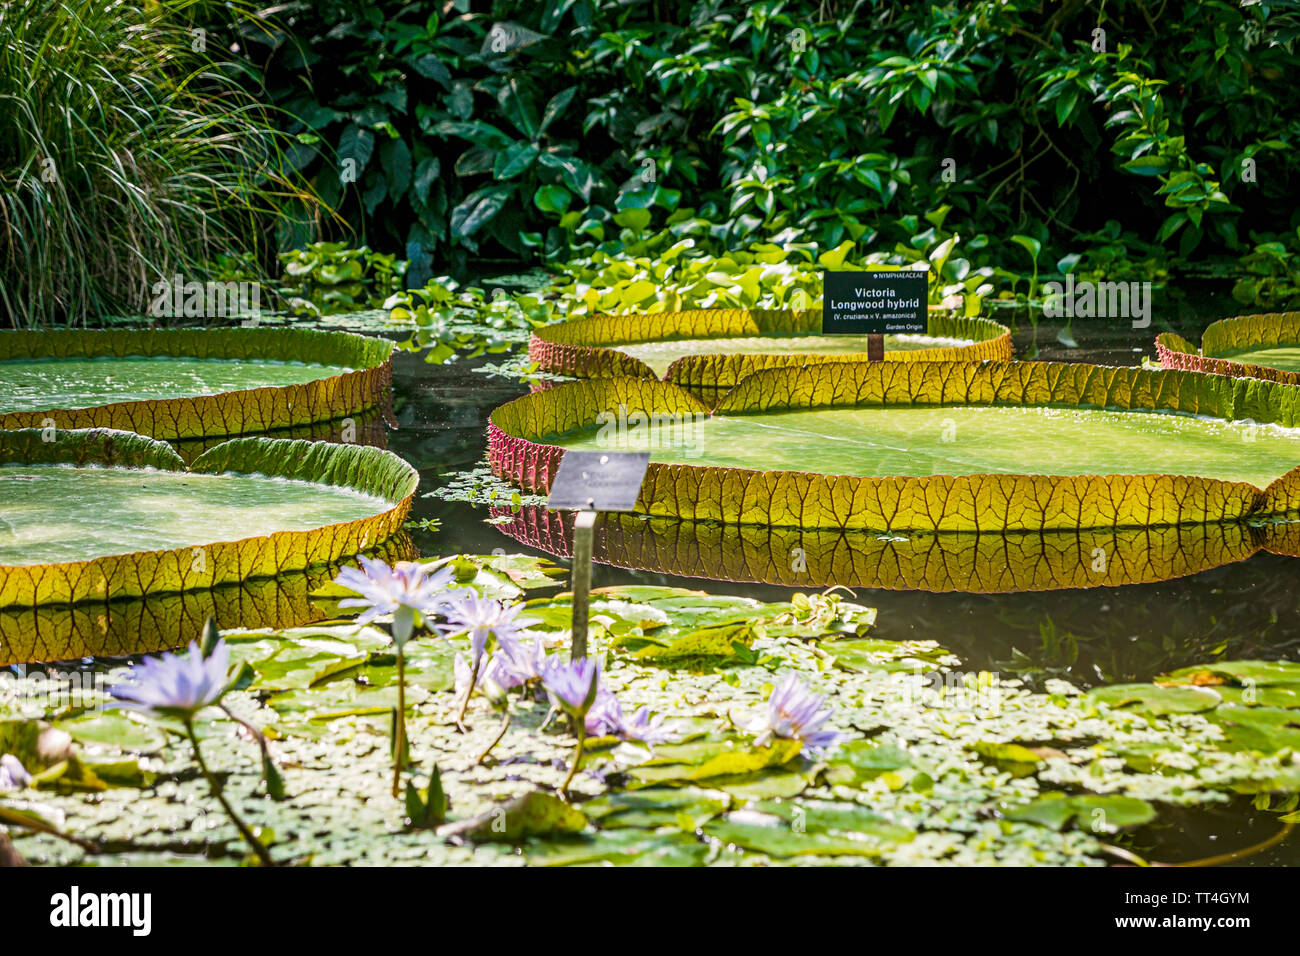 Victoria Longwood Hybrid Waterlilies in the Plants & People House at the Royal Botanic Garden, Edinburgh, Scotland. Stock Photo